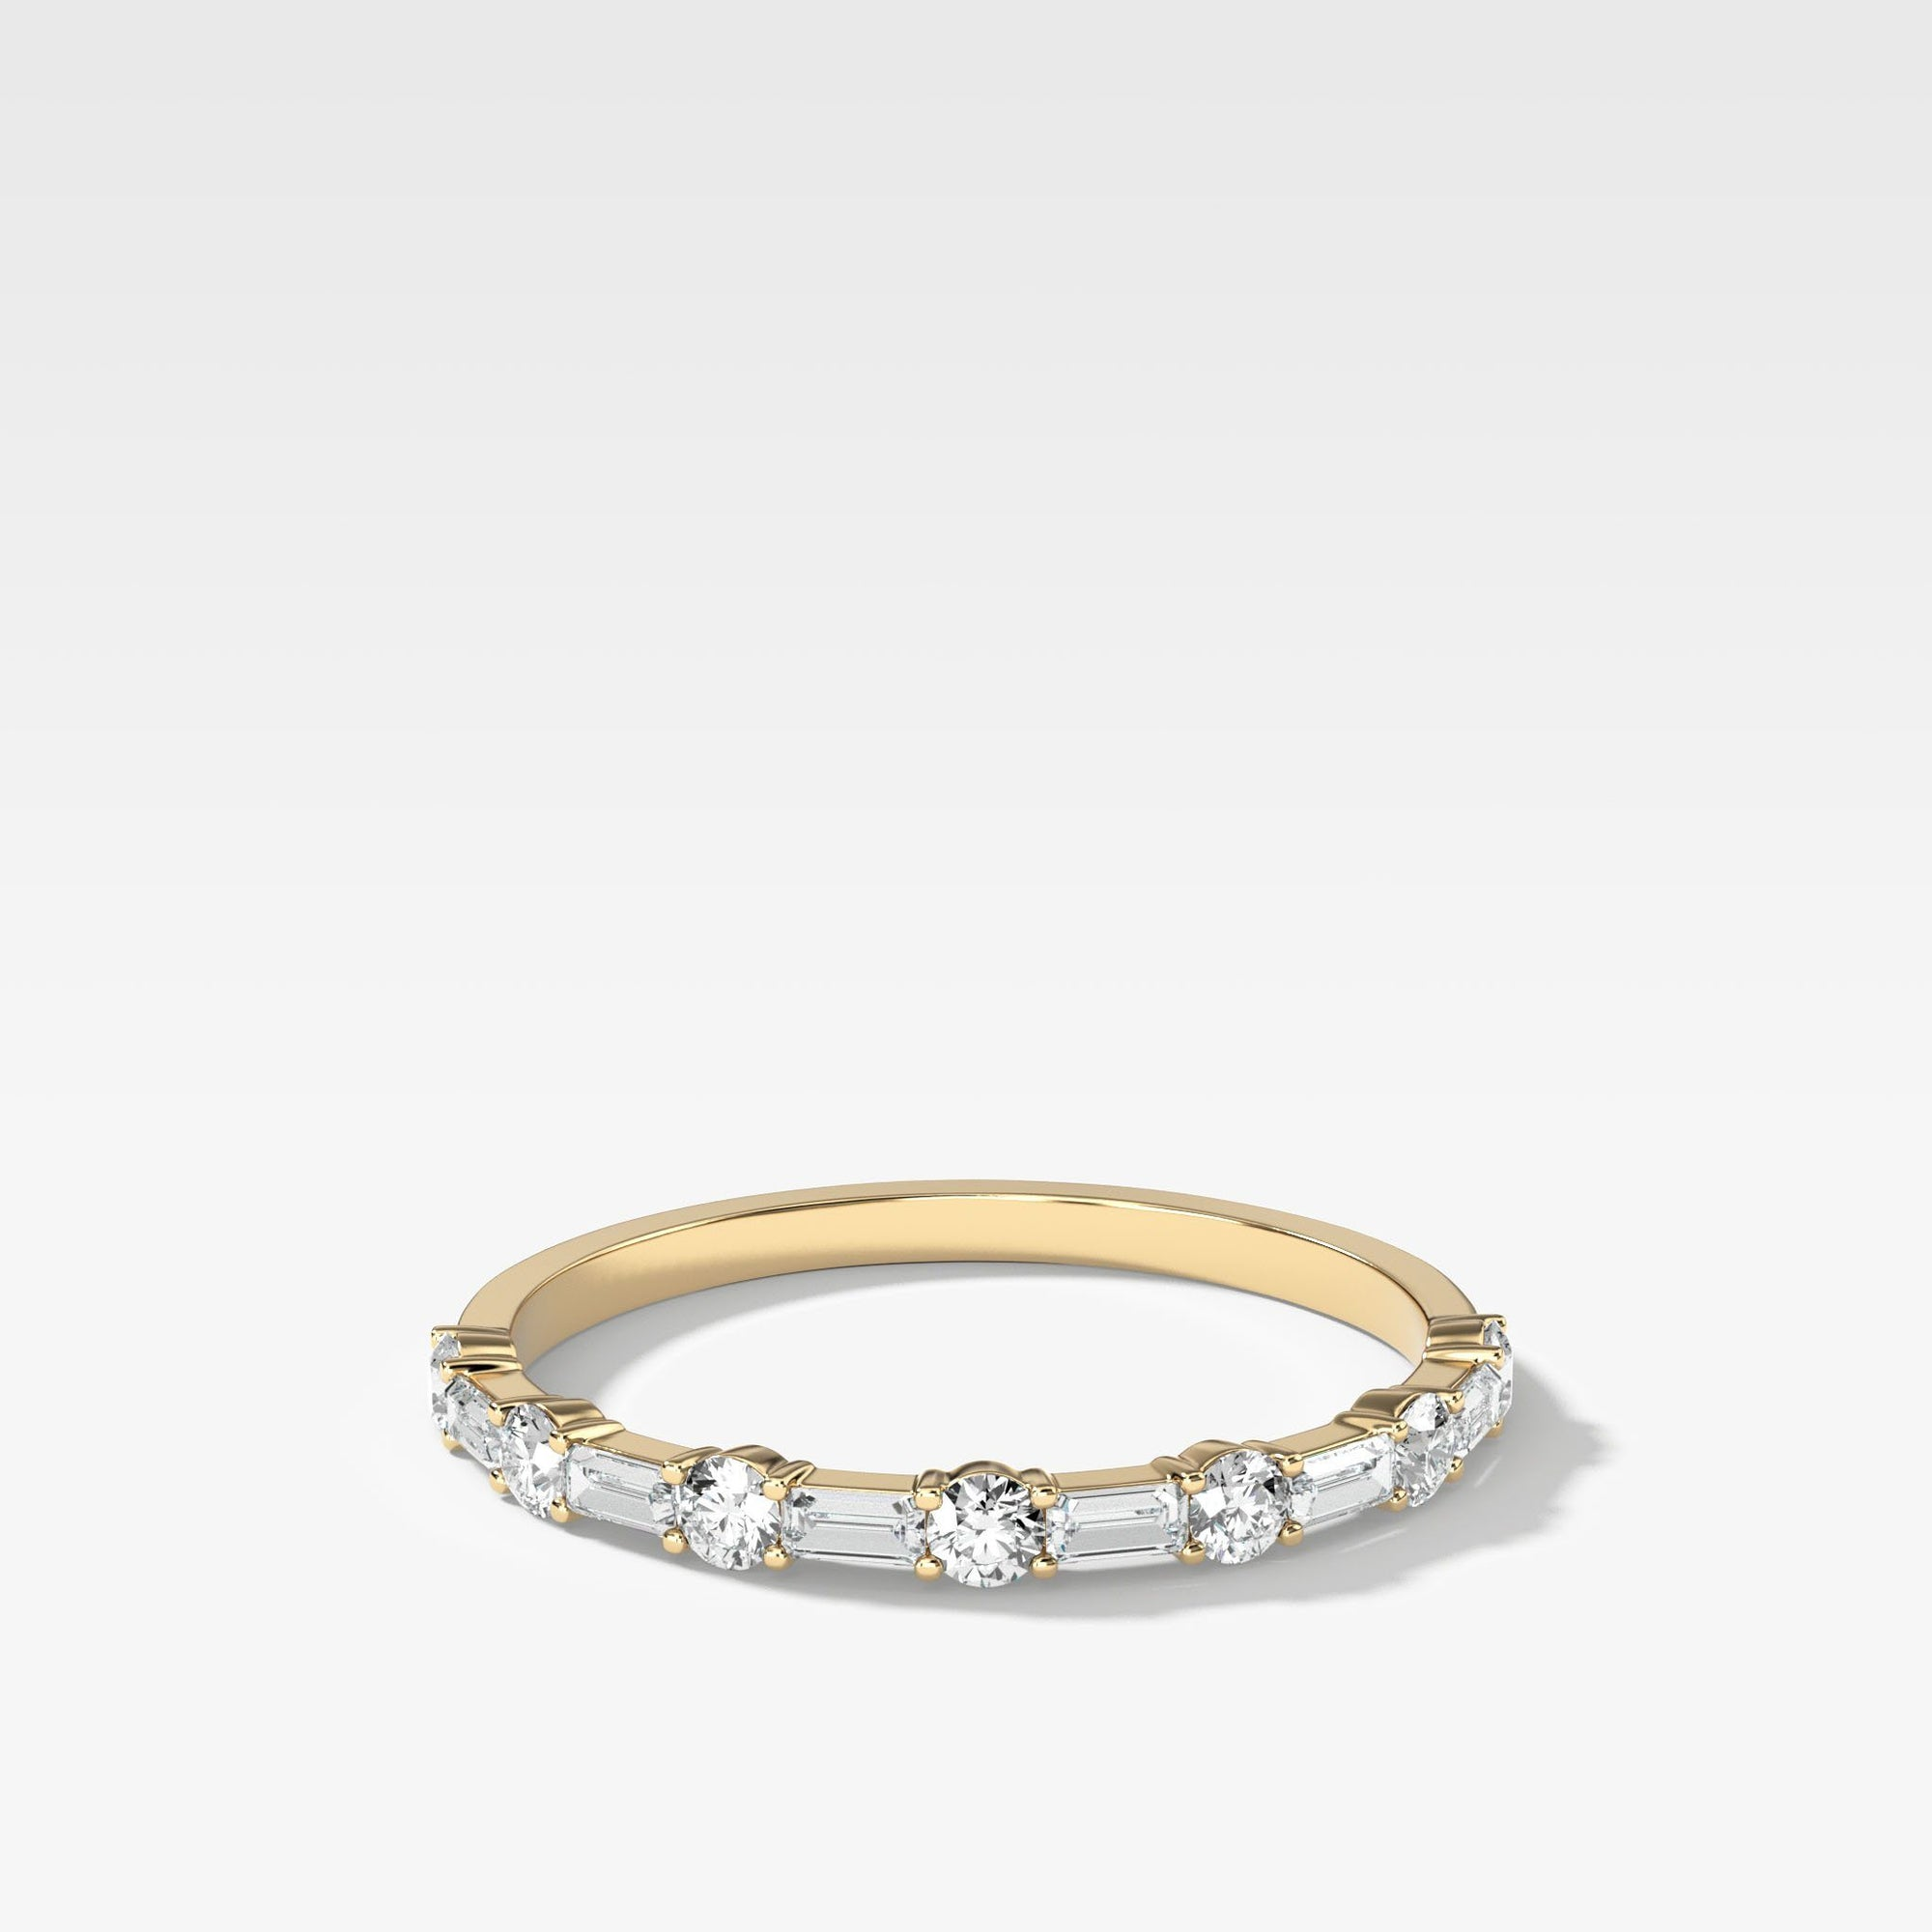 Scorpio Baguette Diamond Wedding Band In Yellow Gold By Good Stone